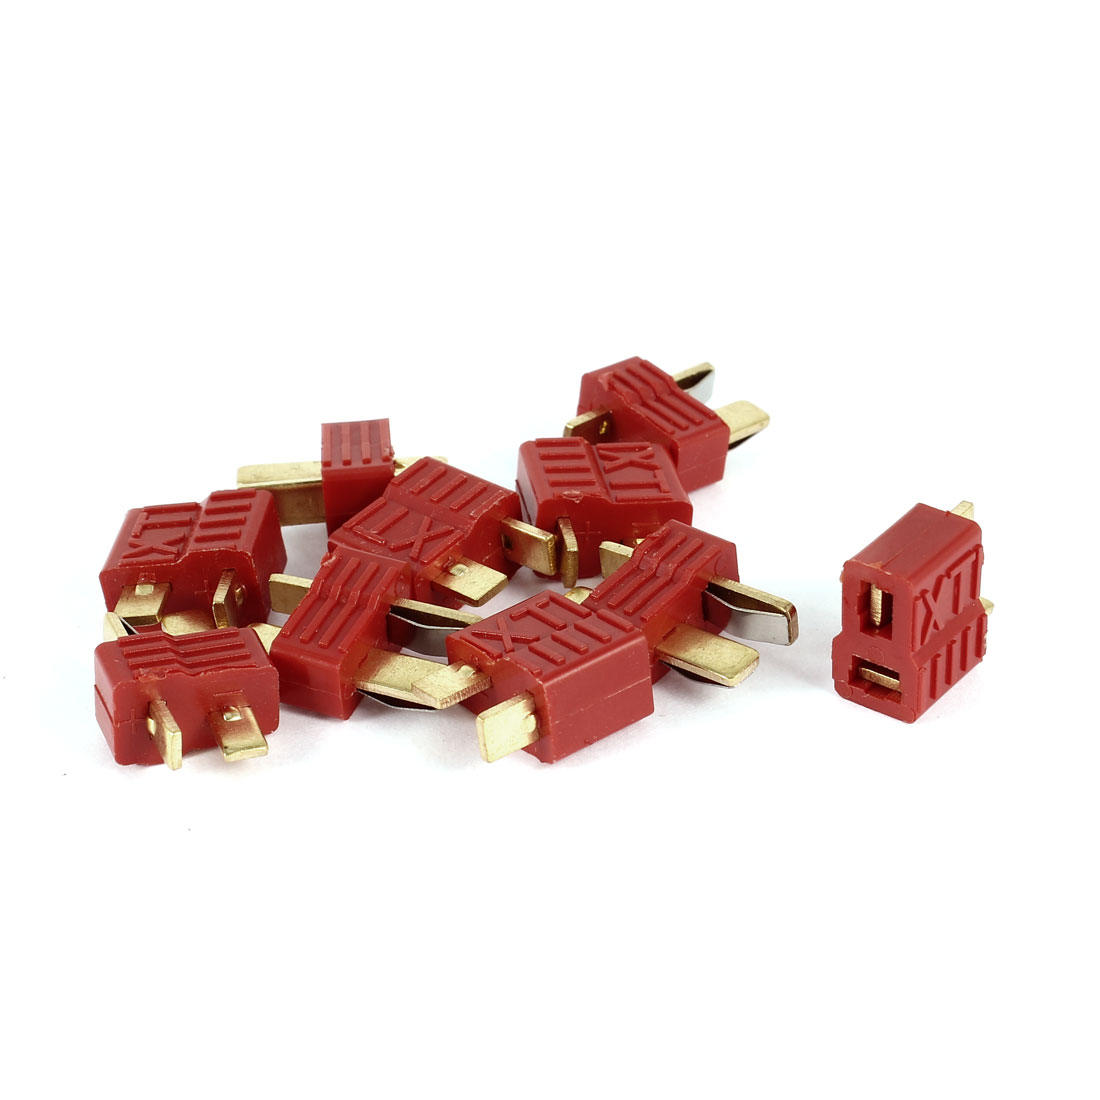 RC Model Toy Battery Repalcing Parts T Plug Male to Female M/F Connector Red 5 Pairs